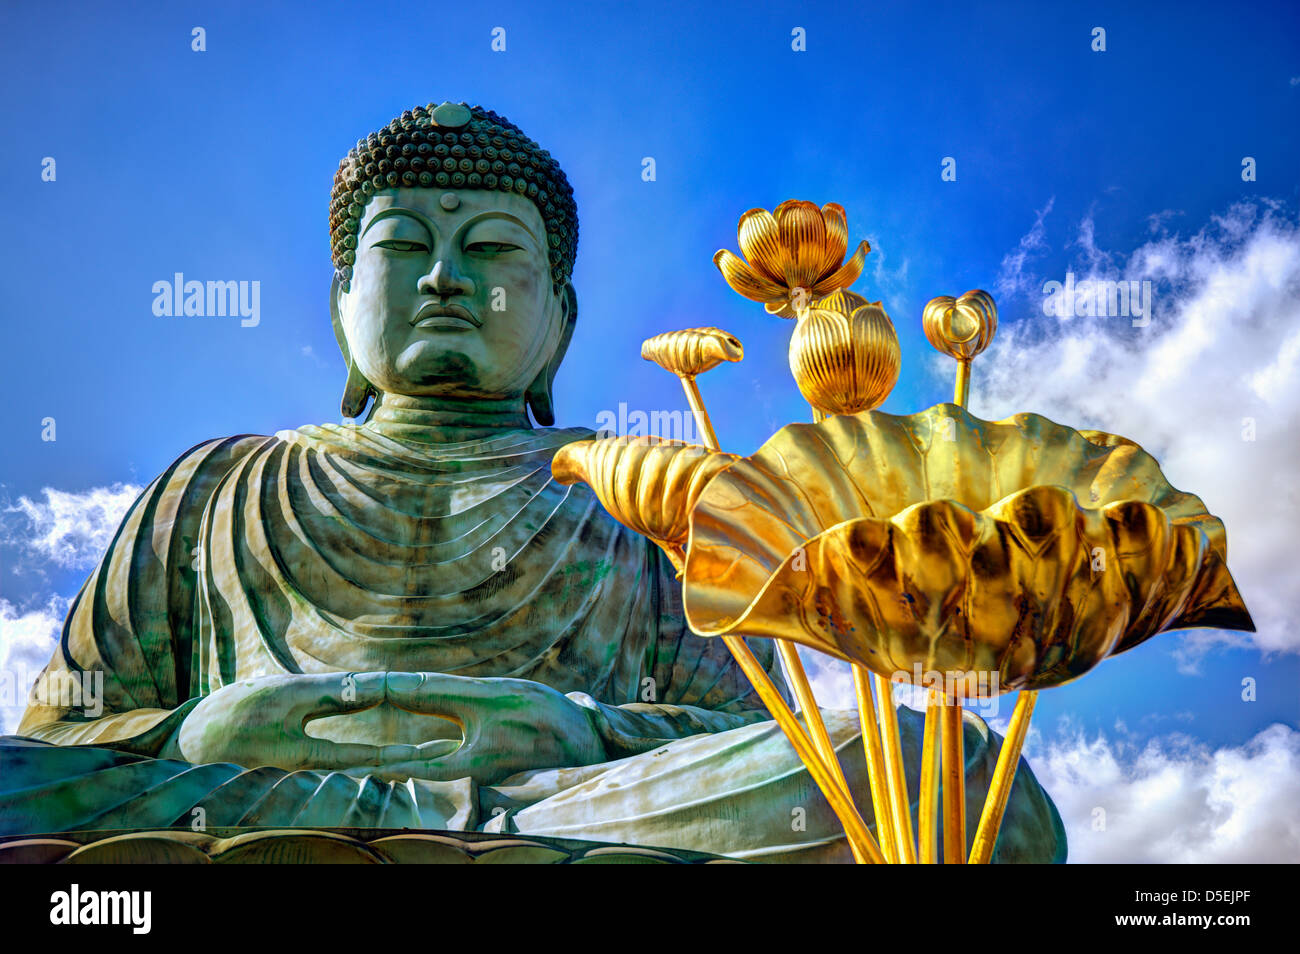 Great Buddha of Hyogo in Kobe, Japan. - Stock Image